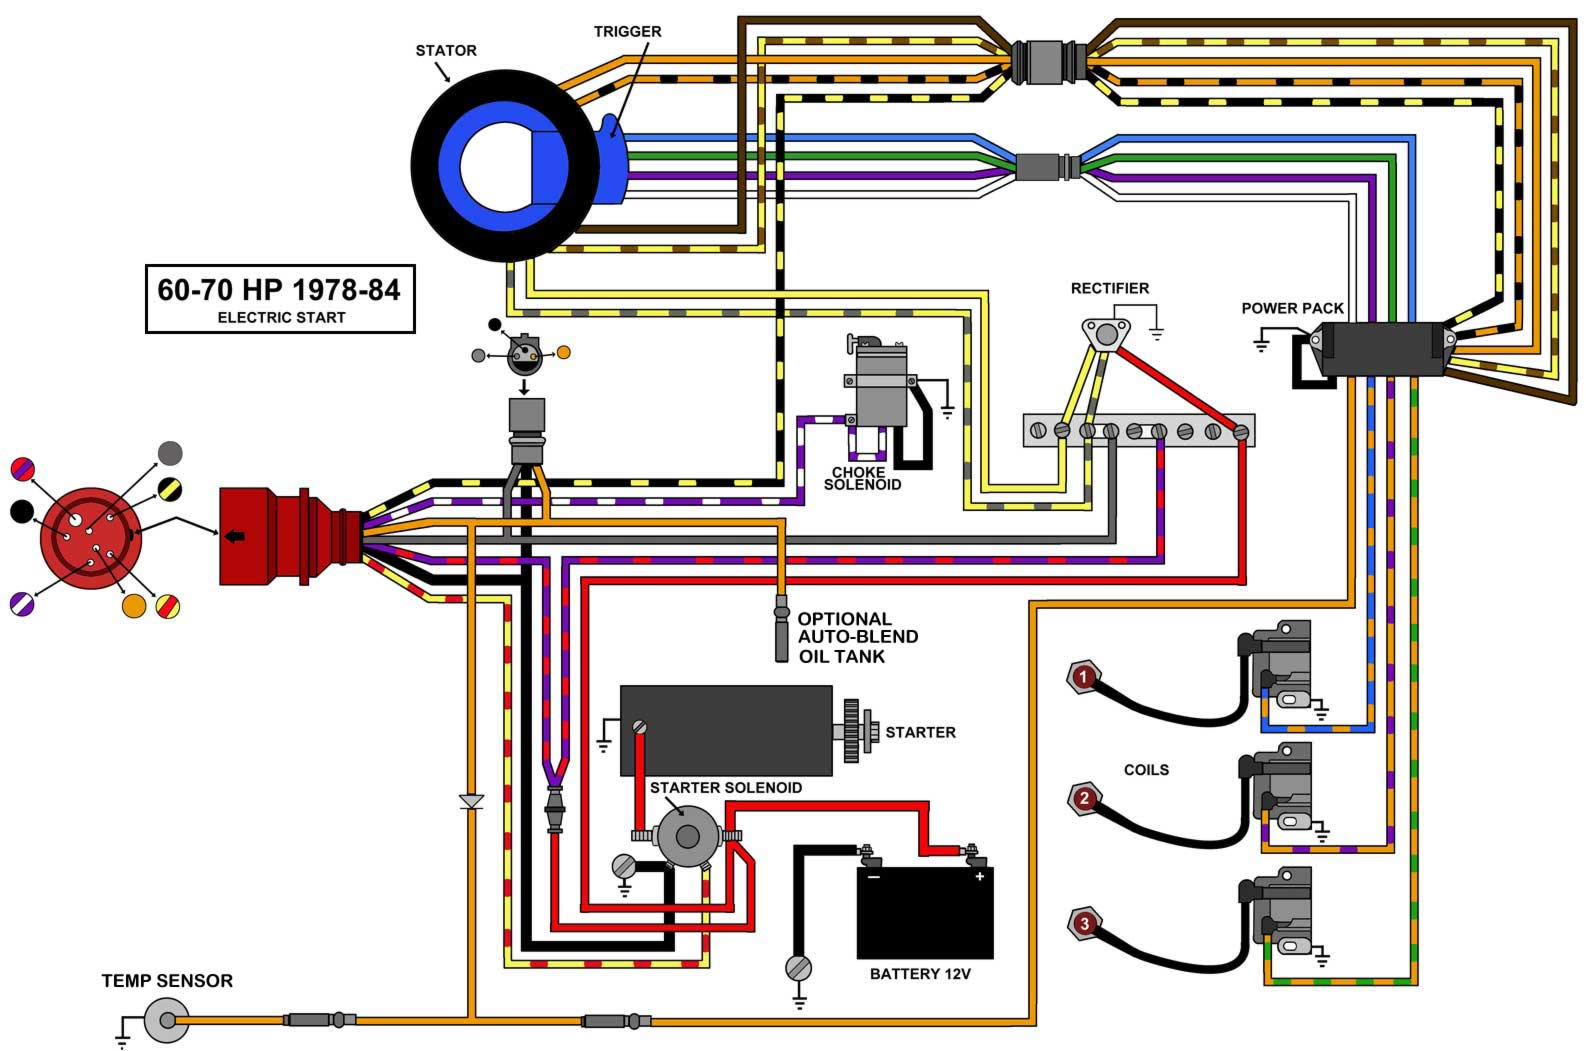 mastertech marine evinrude johnson outboard wiring diagrams Johnson Outboard Troubleshooting 1990 johnson outboard motor manual